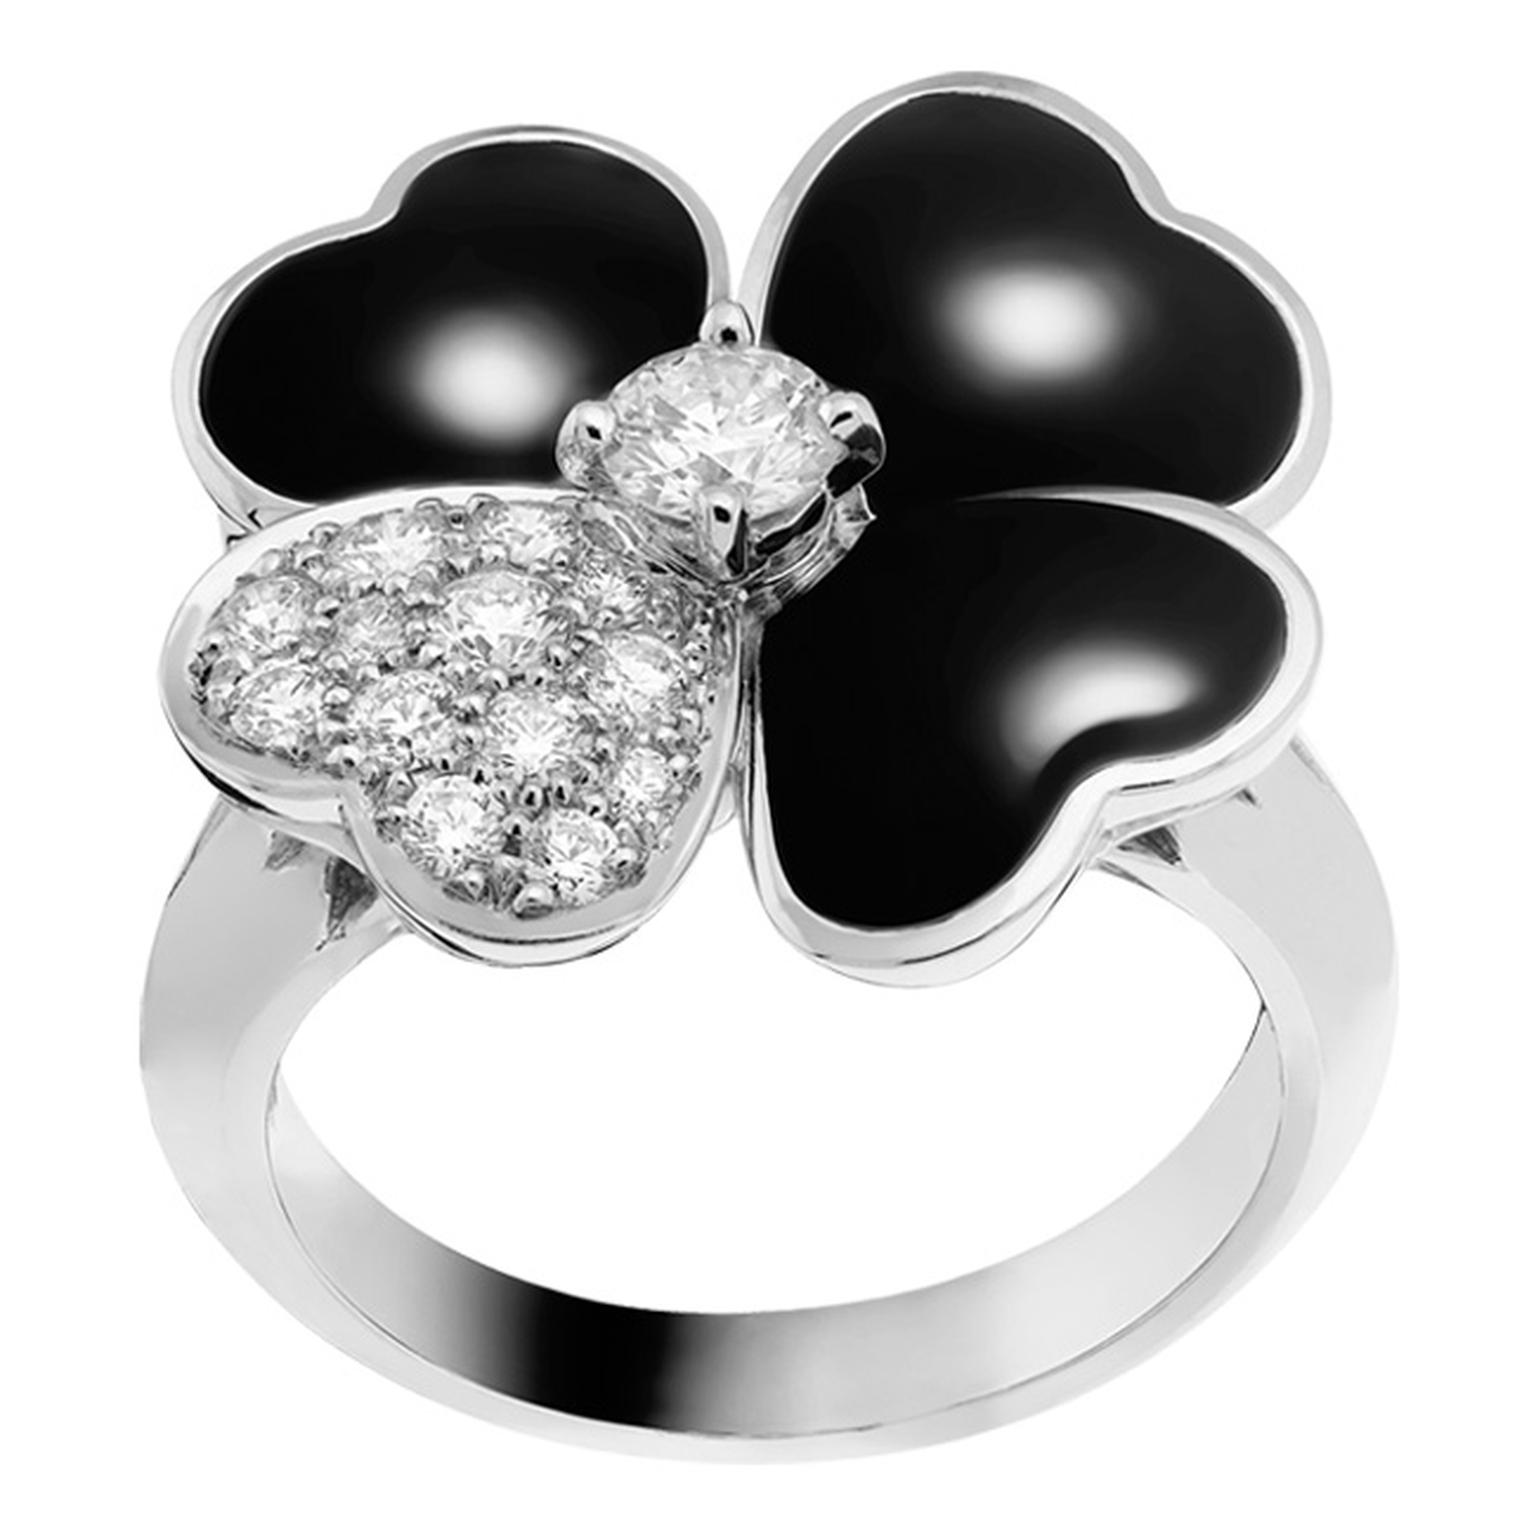 Van Cleef & Arpels Cosmos ring in white gold with a brilliant-cut diamond bud surrounded by onyx and diamond petals.